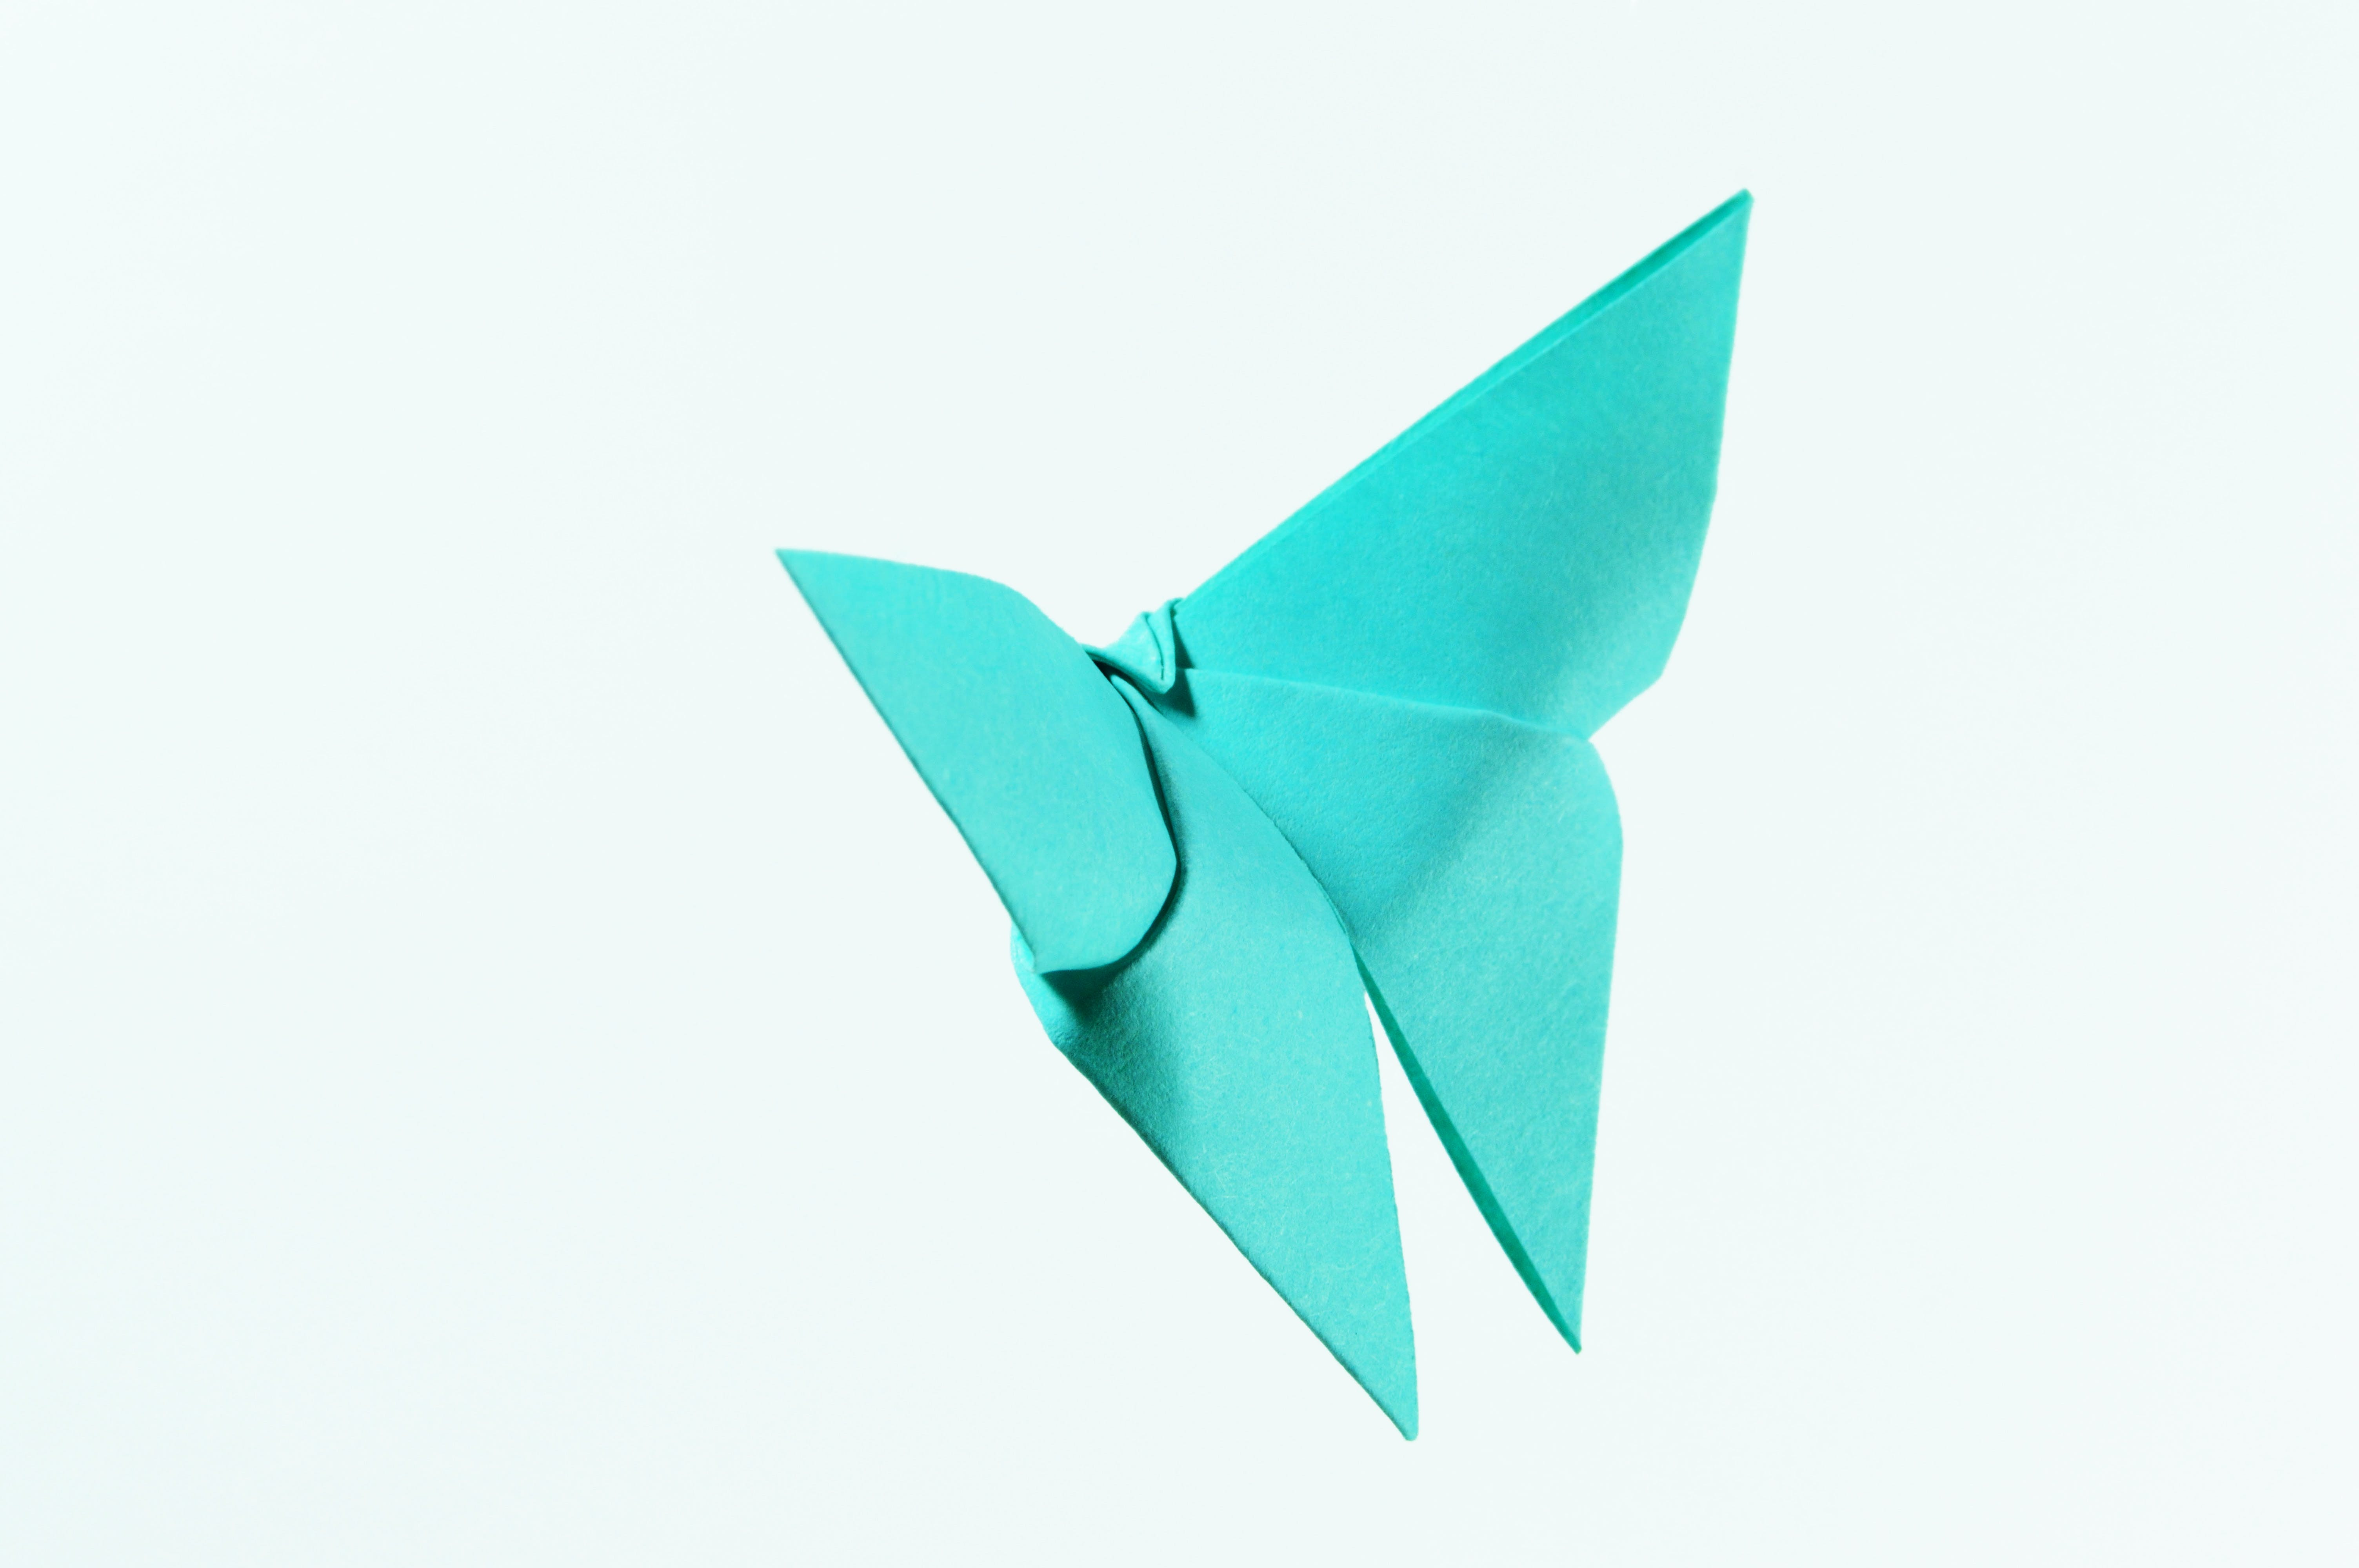 Teal Paper Butterfly Illustration